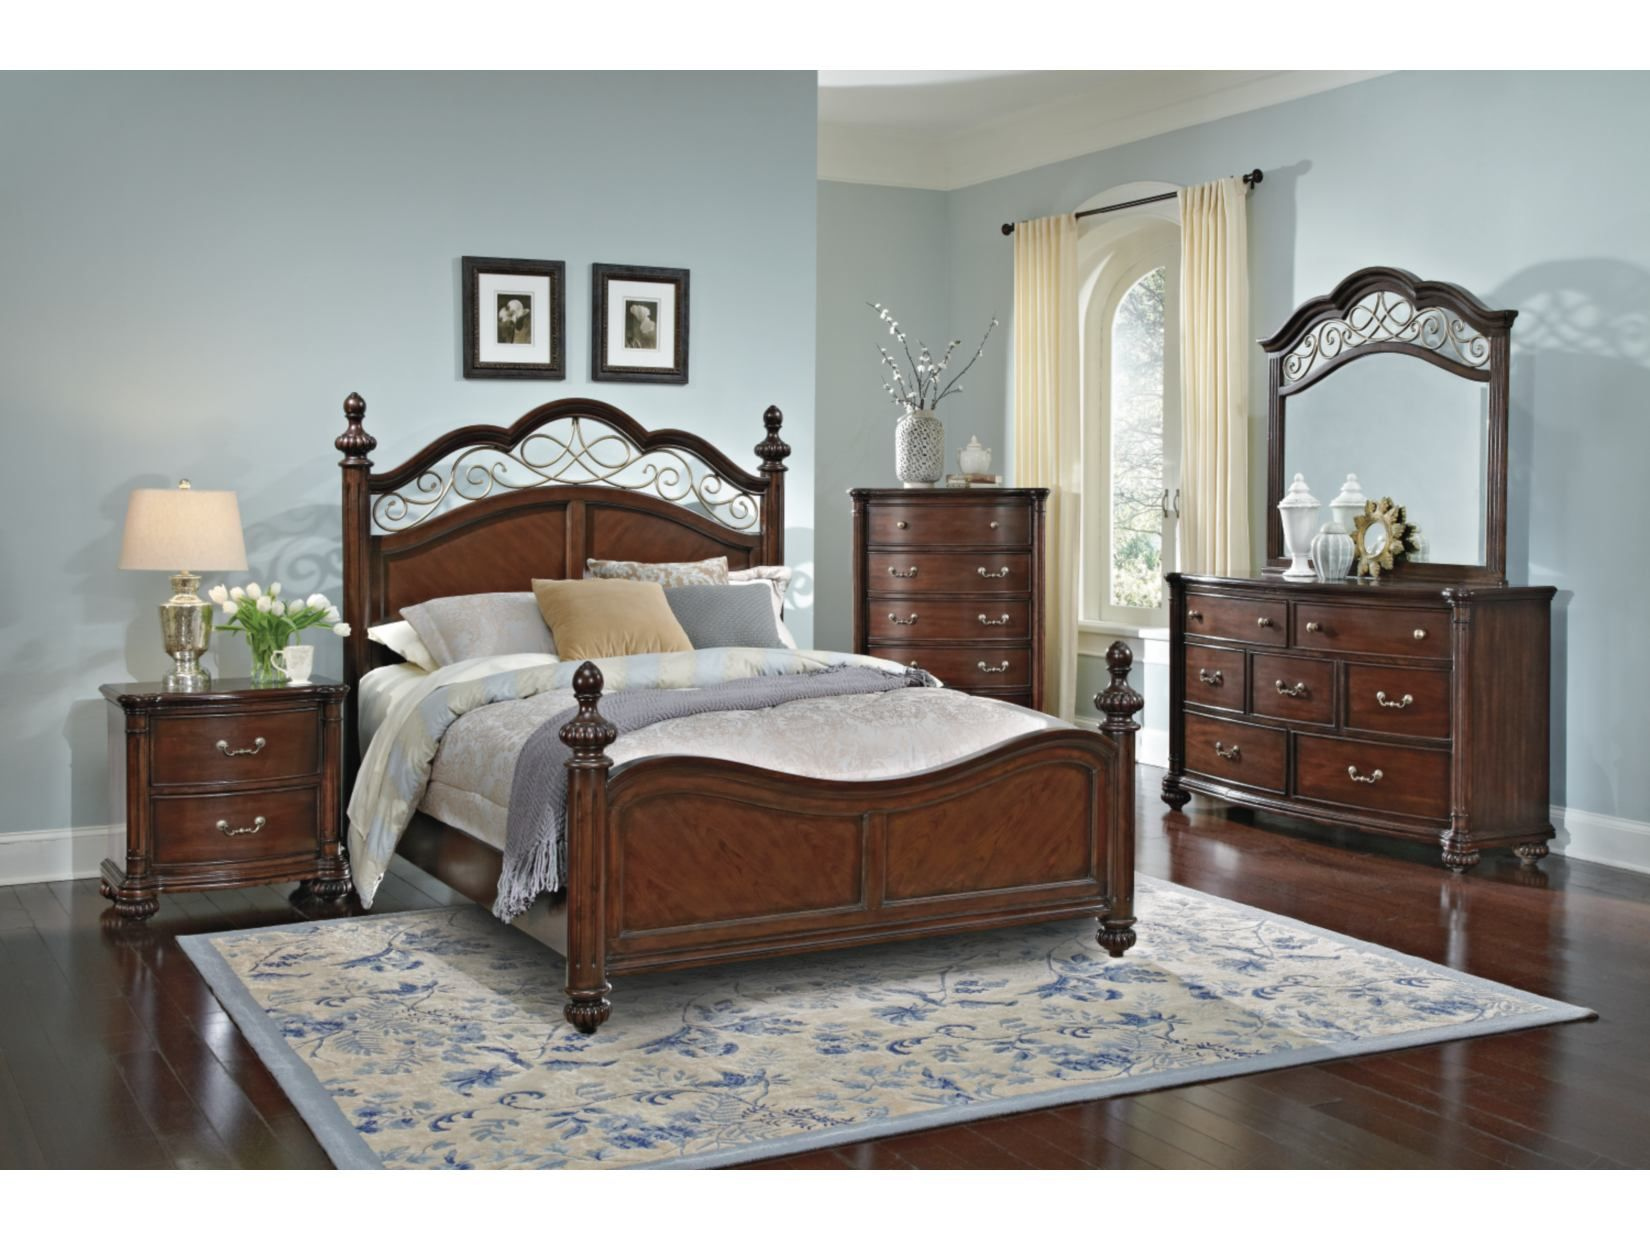 Bedroom Sets Value City if the bedroom set was my style: derbyshire cherry set - value